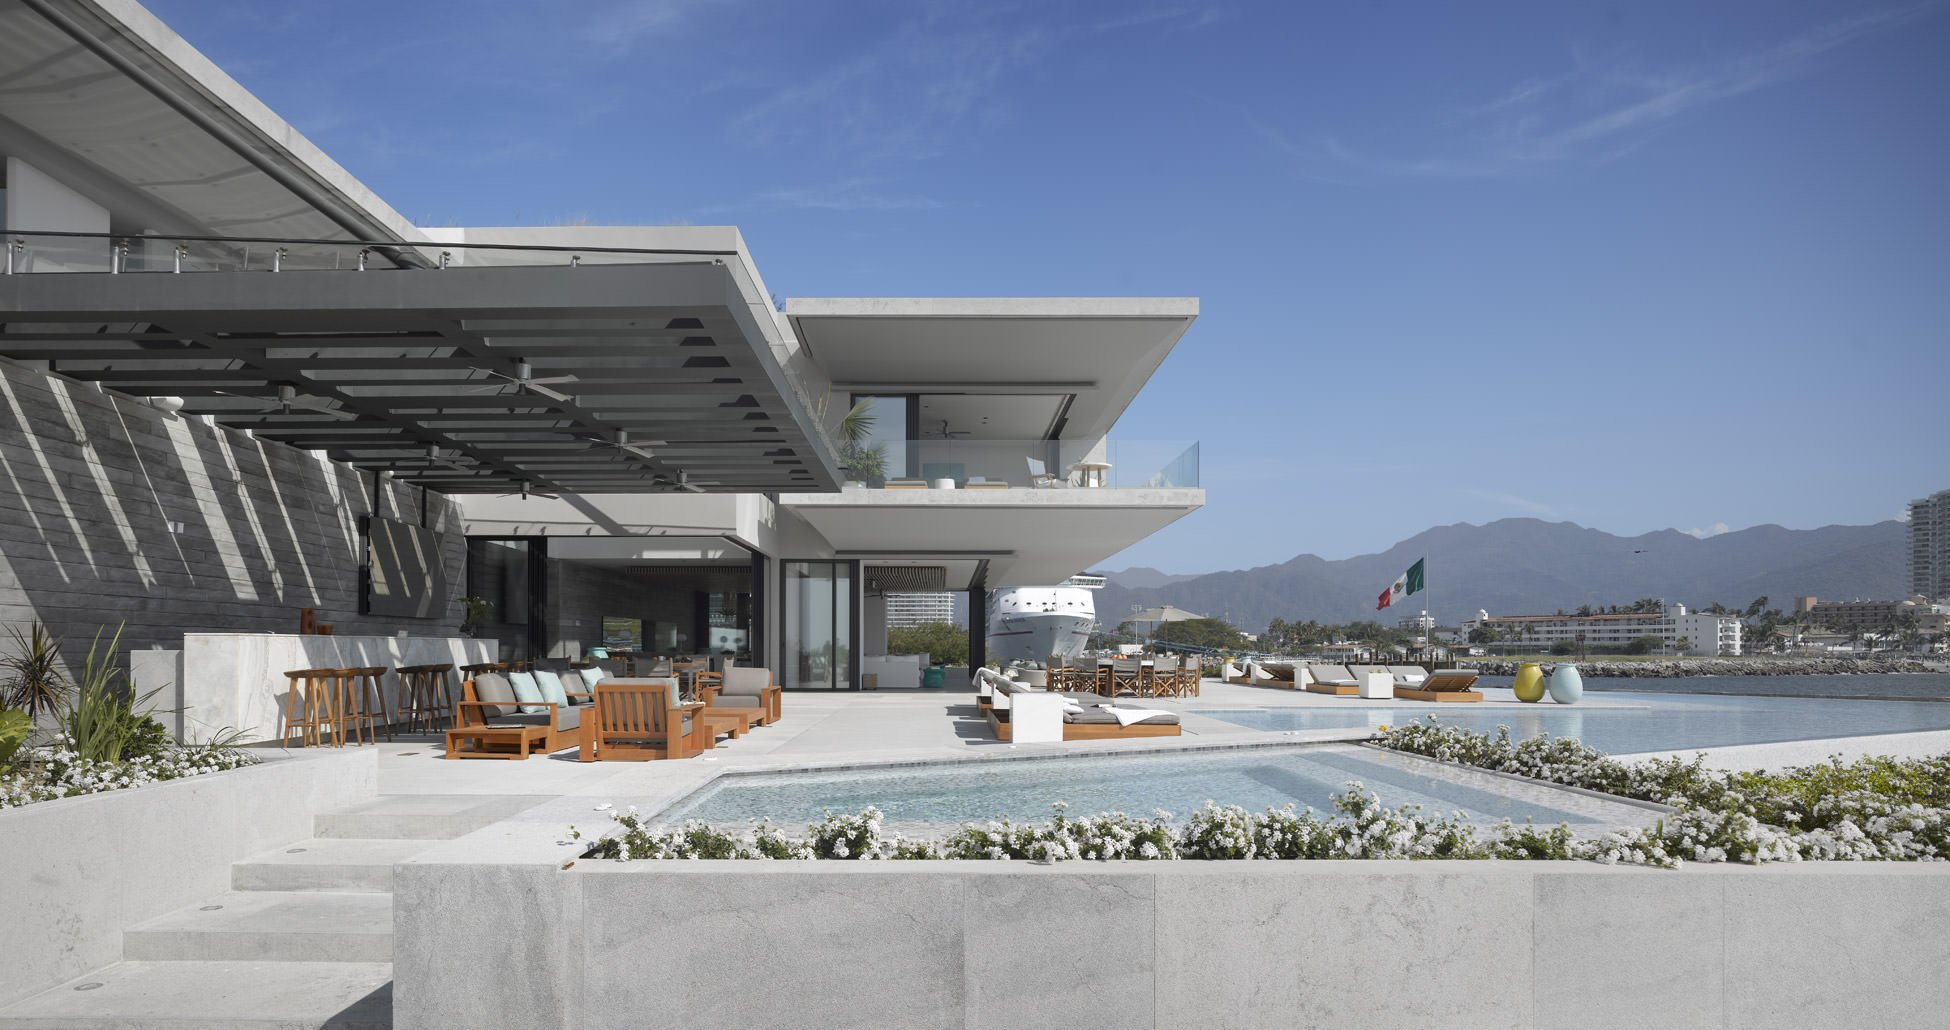 Huge modern house featuring a large patio and lounging area. There's also a bar and outdoor kitchen behind the patio area.